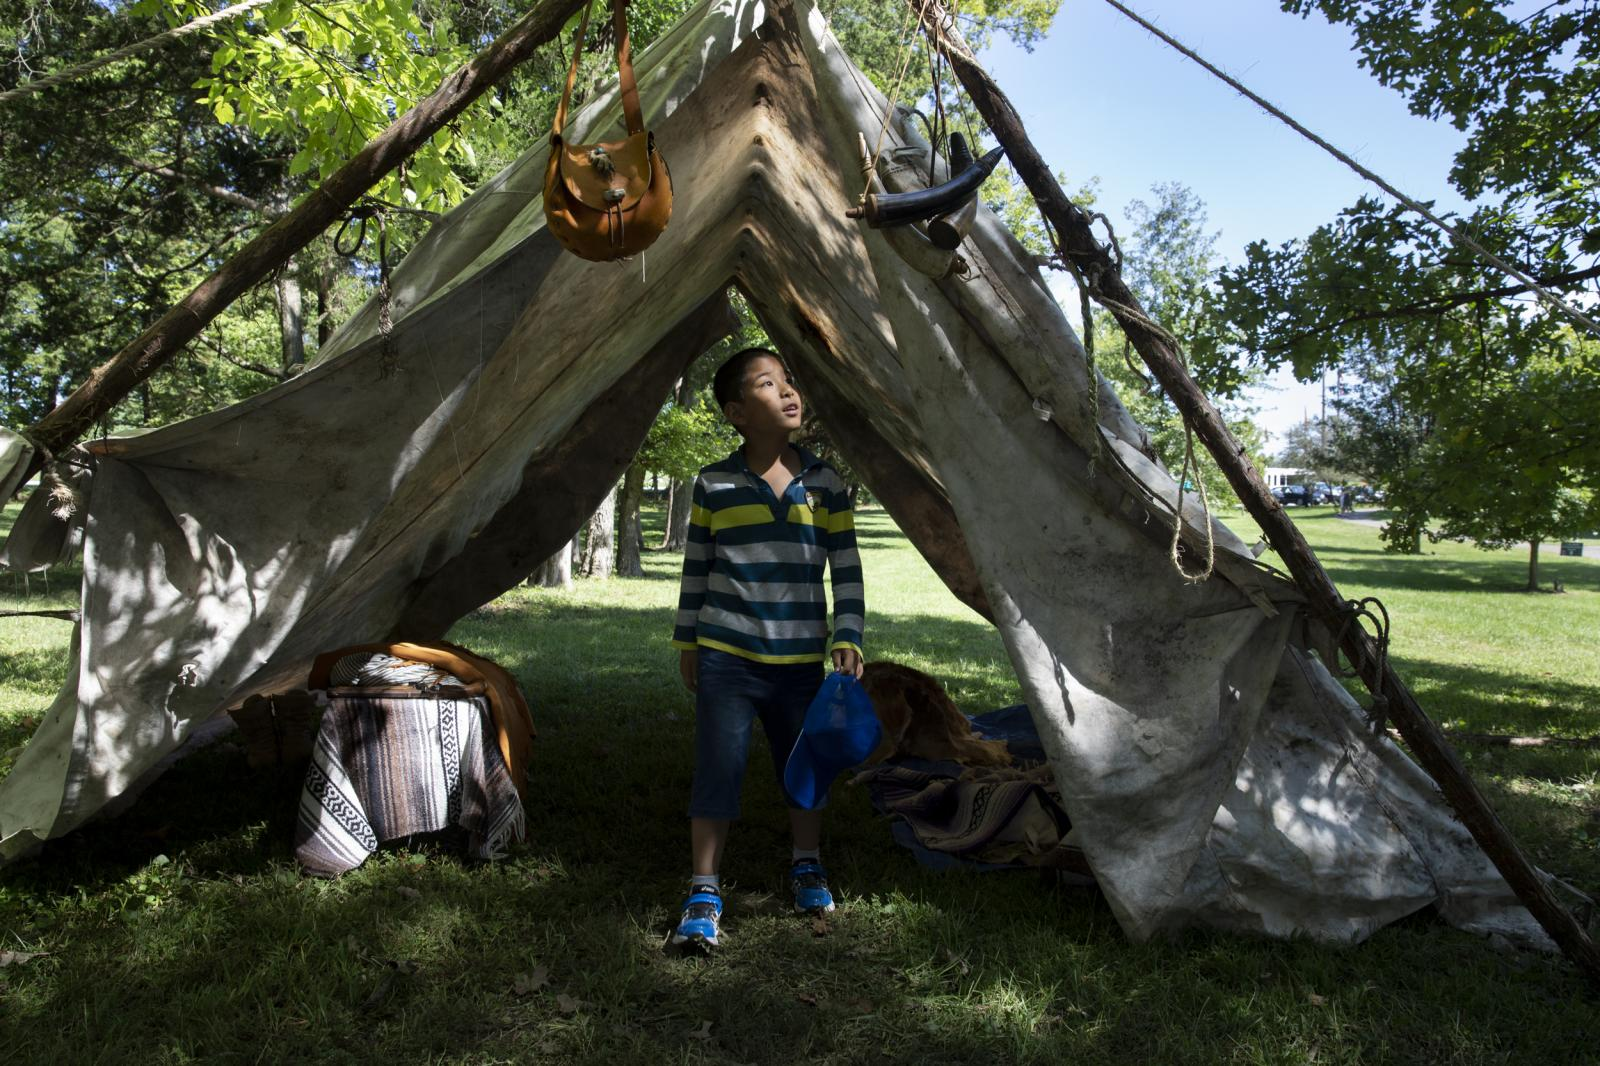 "Lucas He, 8, explores a 19th-century-style mountain man camp during Columbia's 39th annual Heritage Festival and Craft Show at Nifong Park in Columbia, Missouri. A dozen artisans and tradesmen dressed in 19th century attire, demonstrated their trades and sold their wares. Xiao Ling Guo, the boy's mother, said, ""We are newcomers, so I think it's really important for us to understand the depth of local culture."""